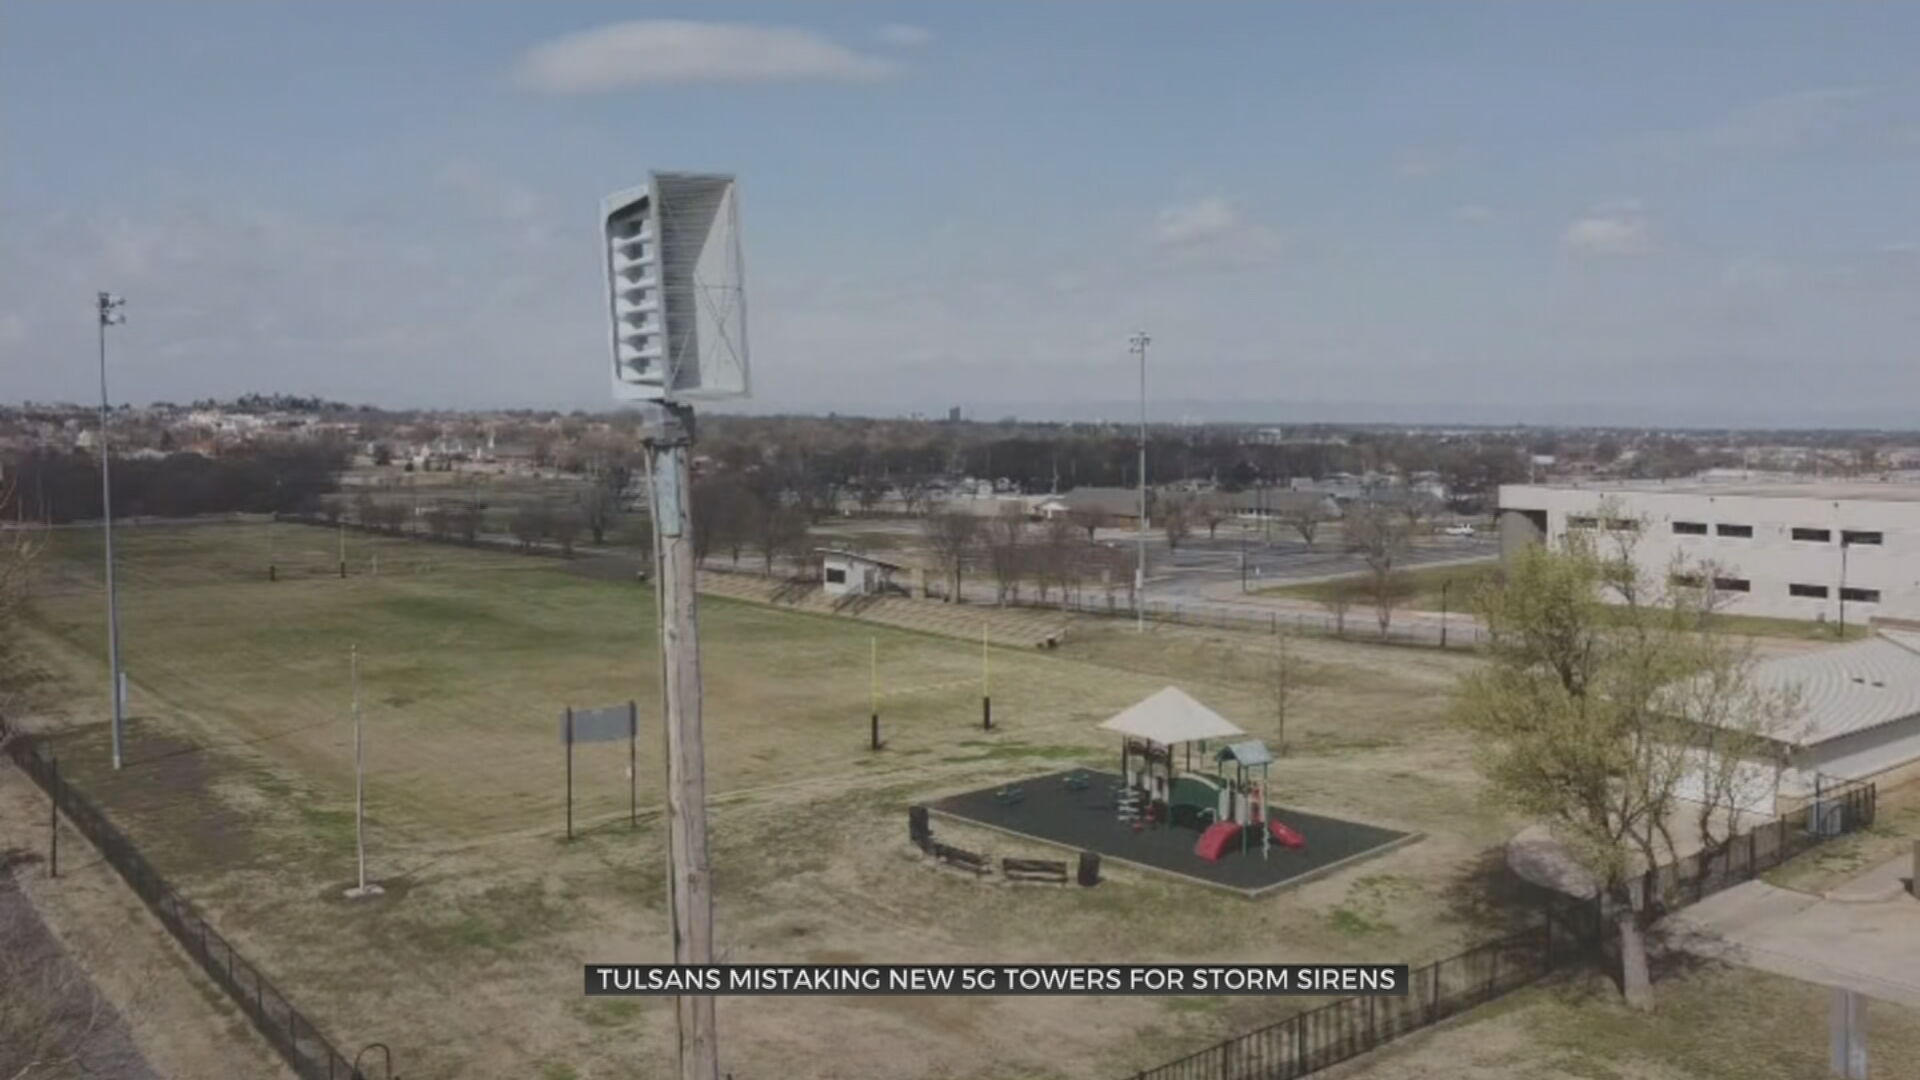 New 5G Cell Phone Towers Mistaken For Tulsa Storm Sirens